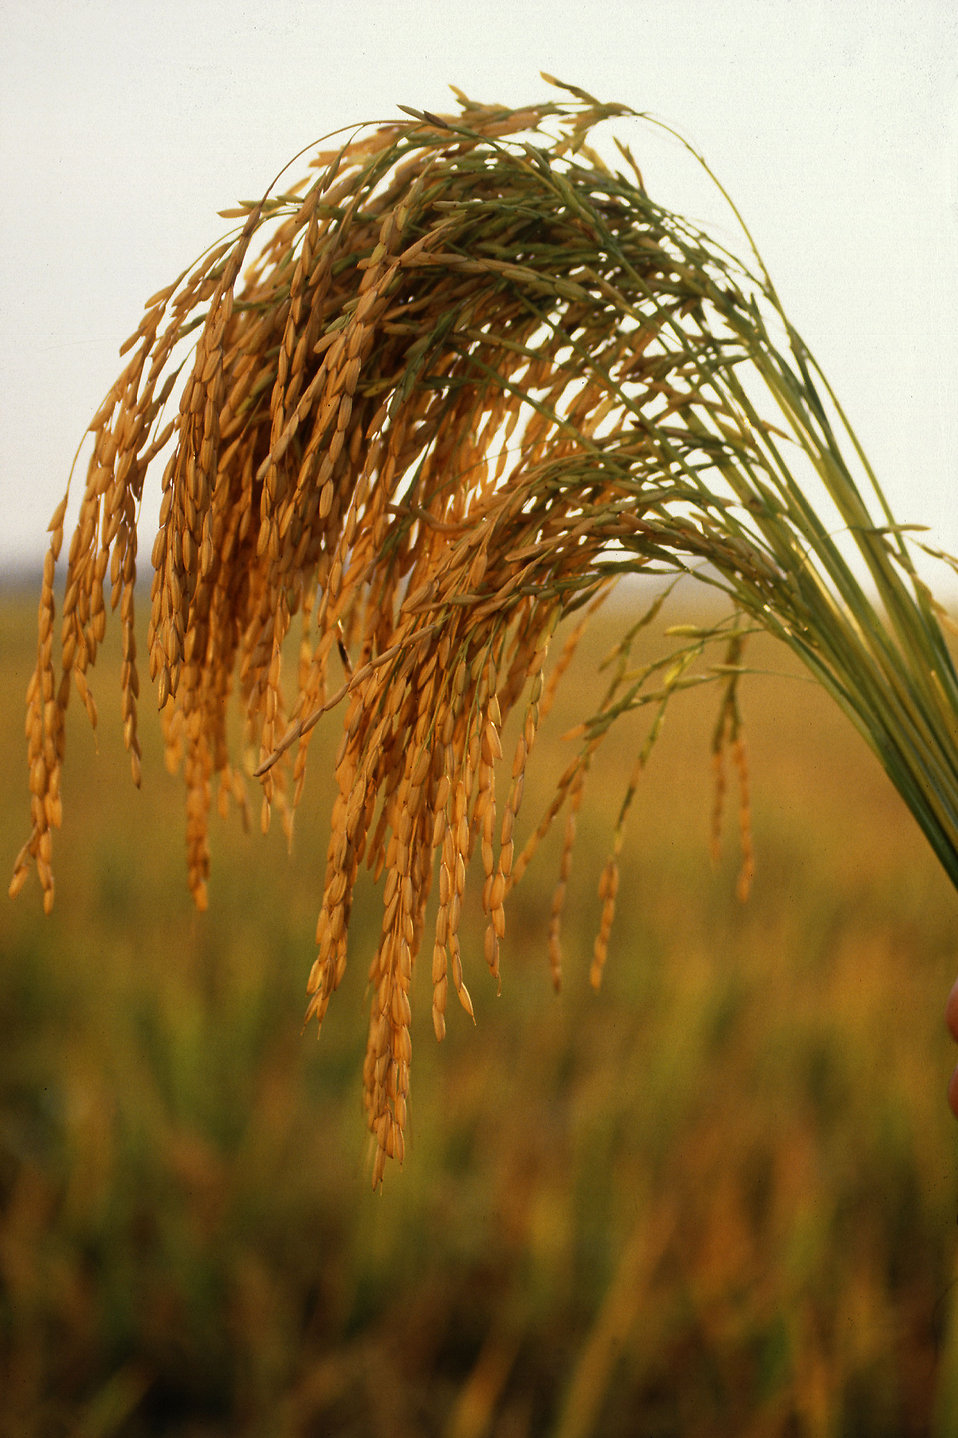 Researchers are testing a new hybrid of rice rich in resistant starch.